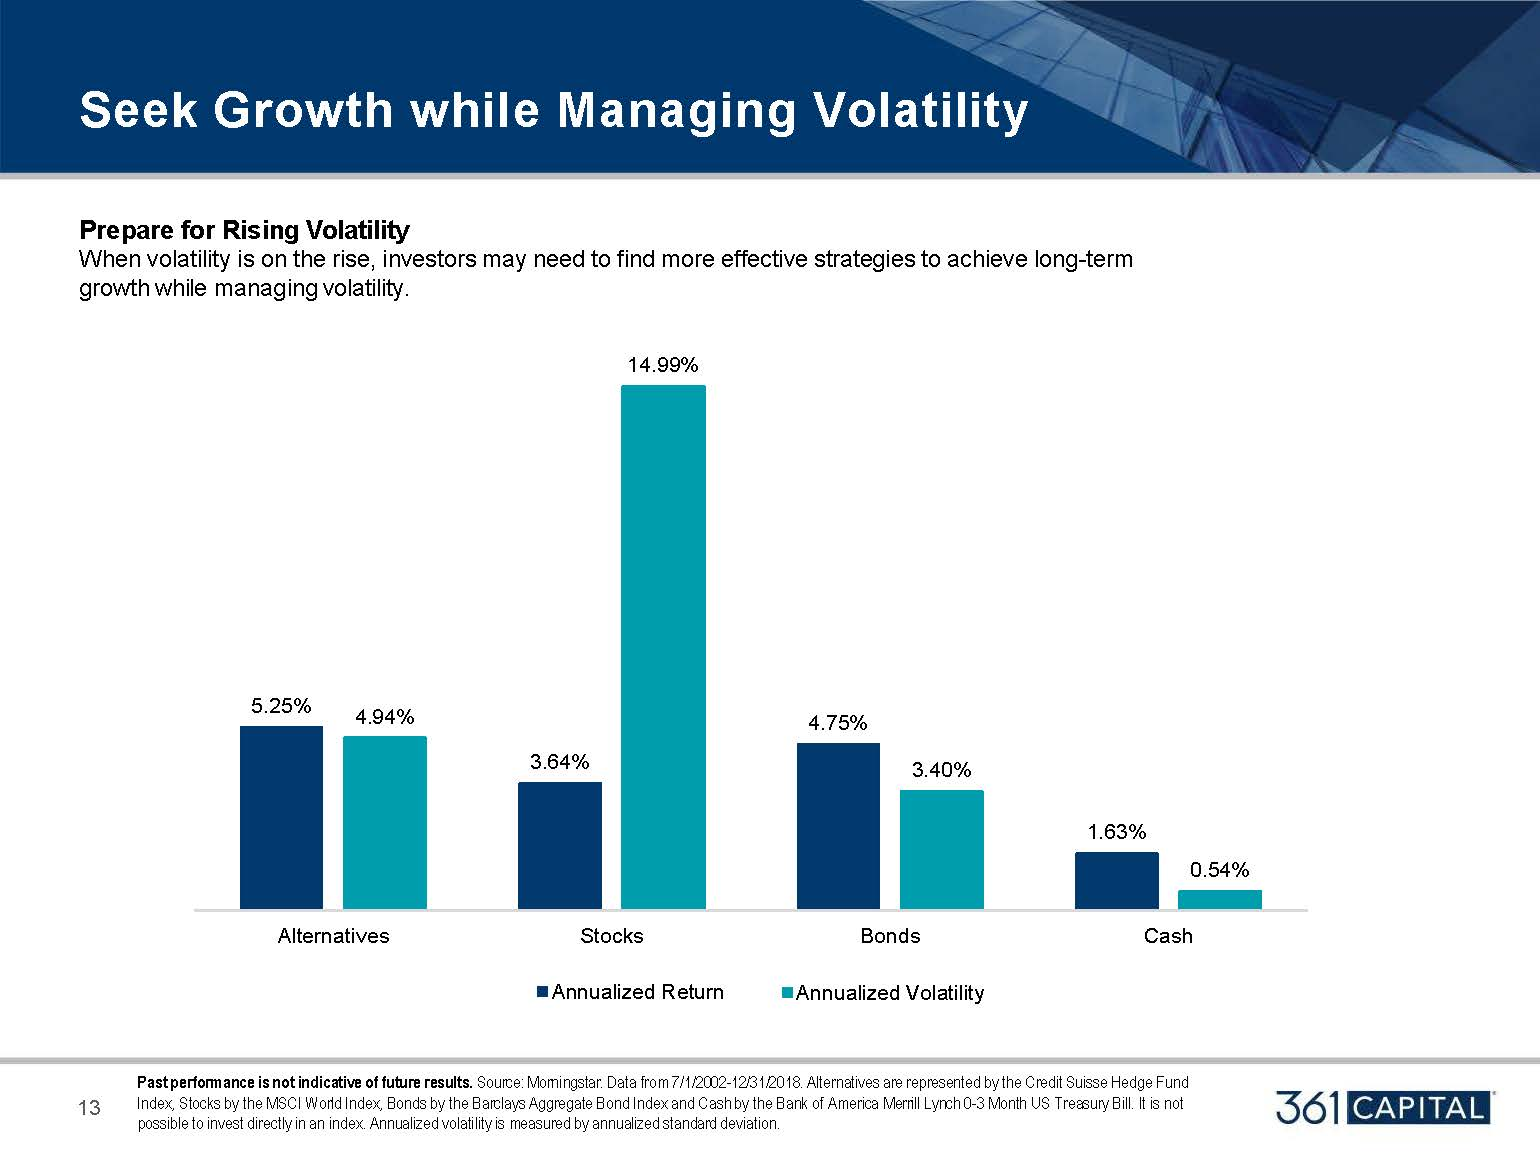 Prepare for Rising Volatility - When Volatility is on the rise, investors may need to fund more strategies to achieve long-term growth while managing volatility